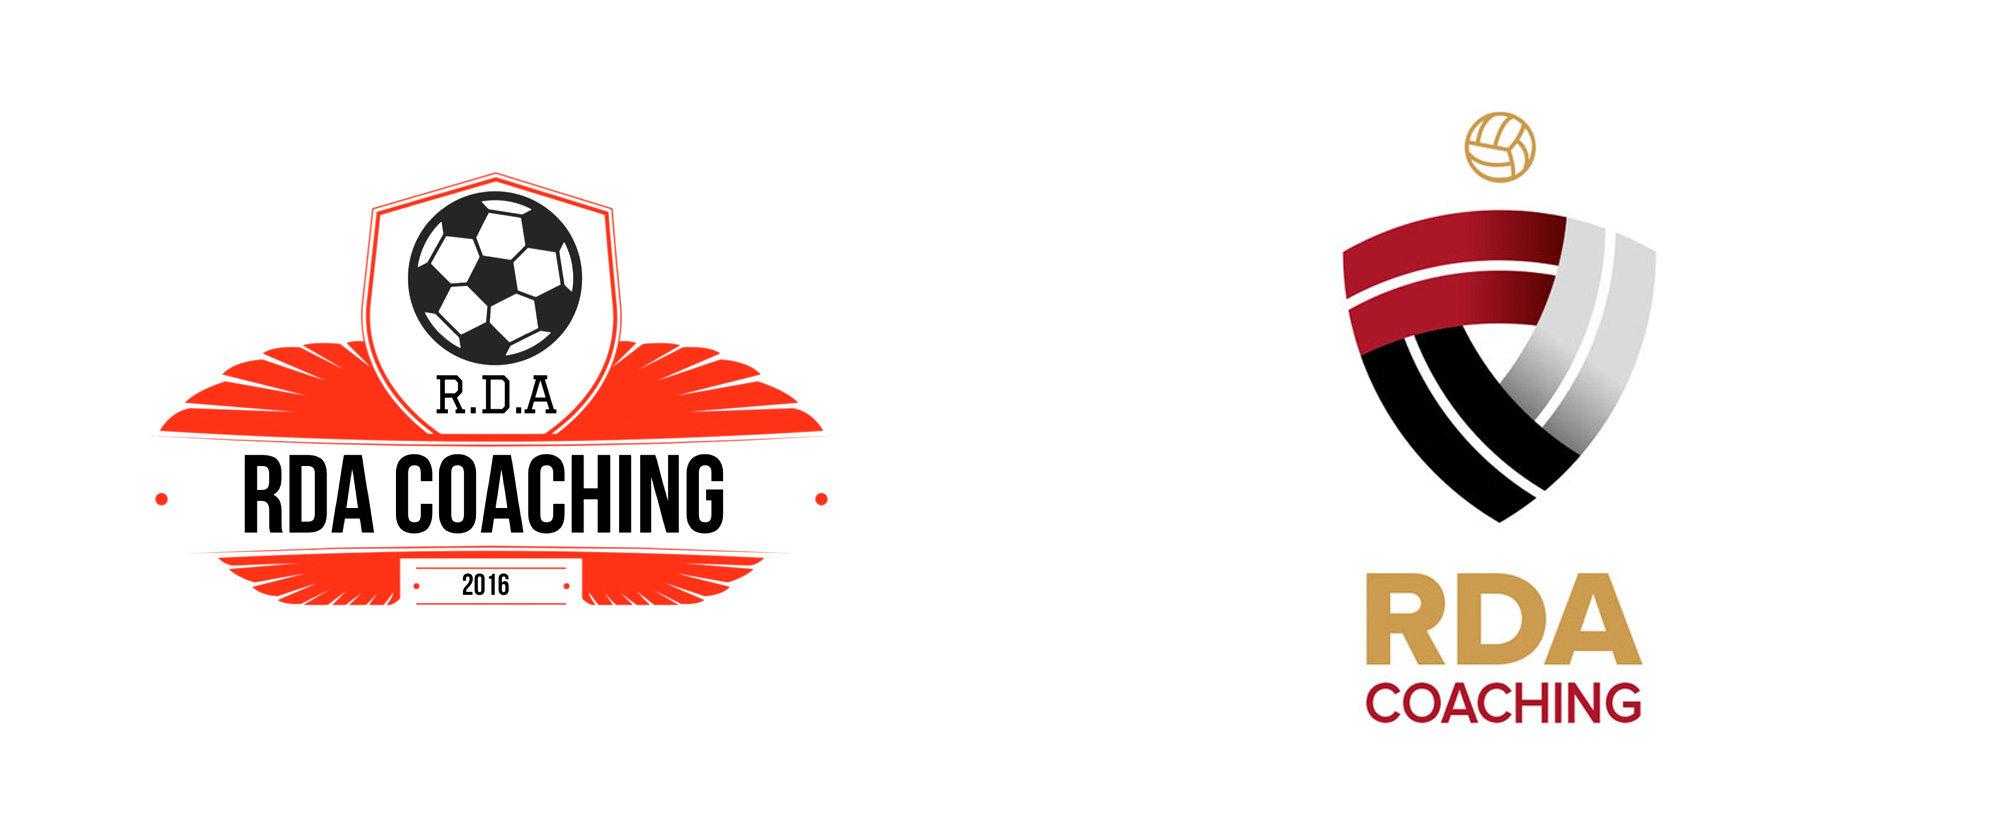 New Logo and Identity for RDA Coaching by Kieran Harrod